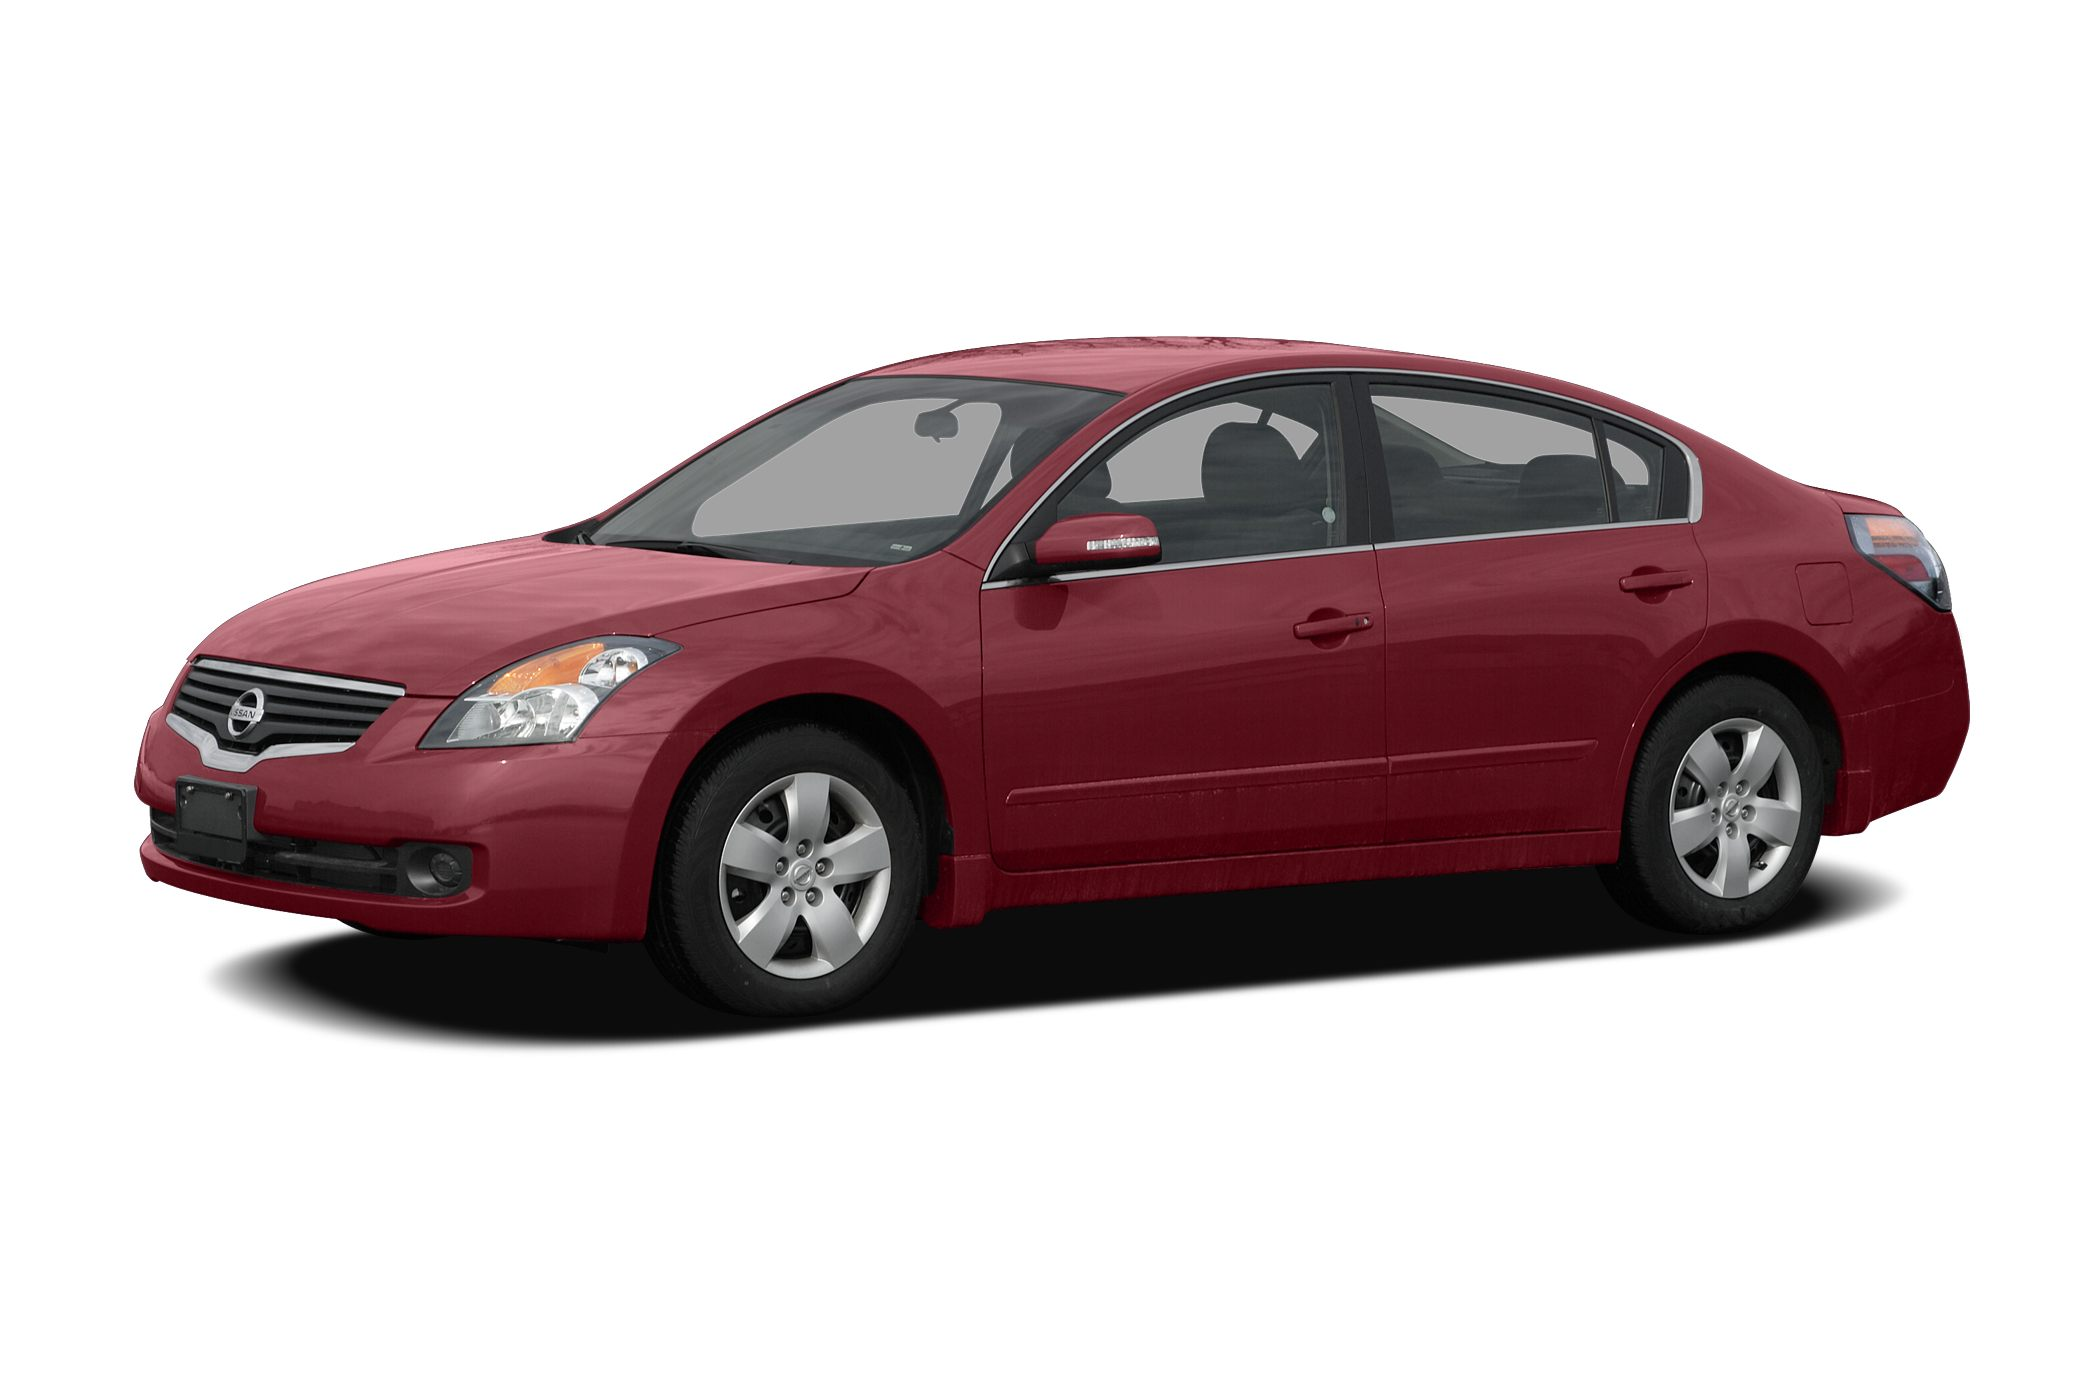 2007 Nissan Altima 25 Vehicle Detailed Recent Oil Change and Passed Dealer Inspection Conditio